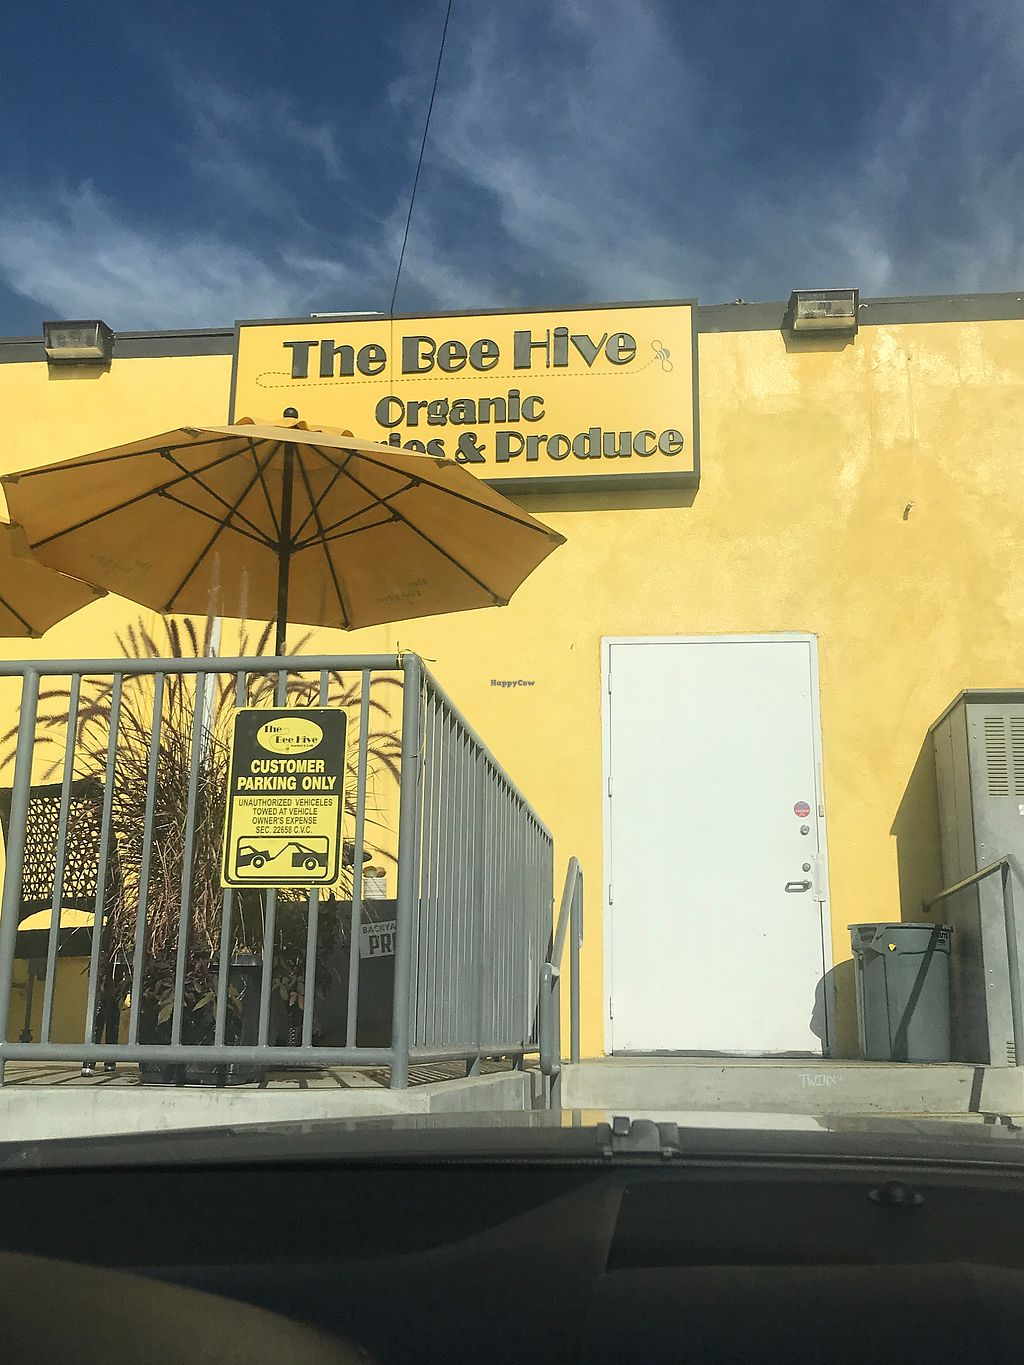 """Photo of The Bee Hive Market & Deli  by <a href=""""/members/profile/Vegan_Ness"""">Vegan_Ness</a> <br/>Parking is in the back <br/> December 22, 2017  - <a href='/contact/abuse/image/102745/338174'>Report</a>"""